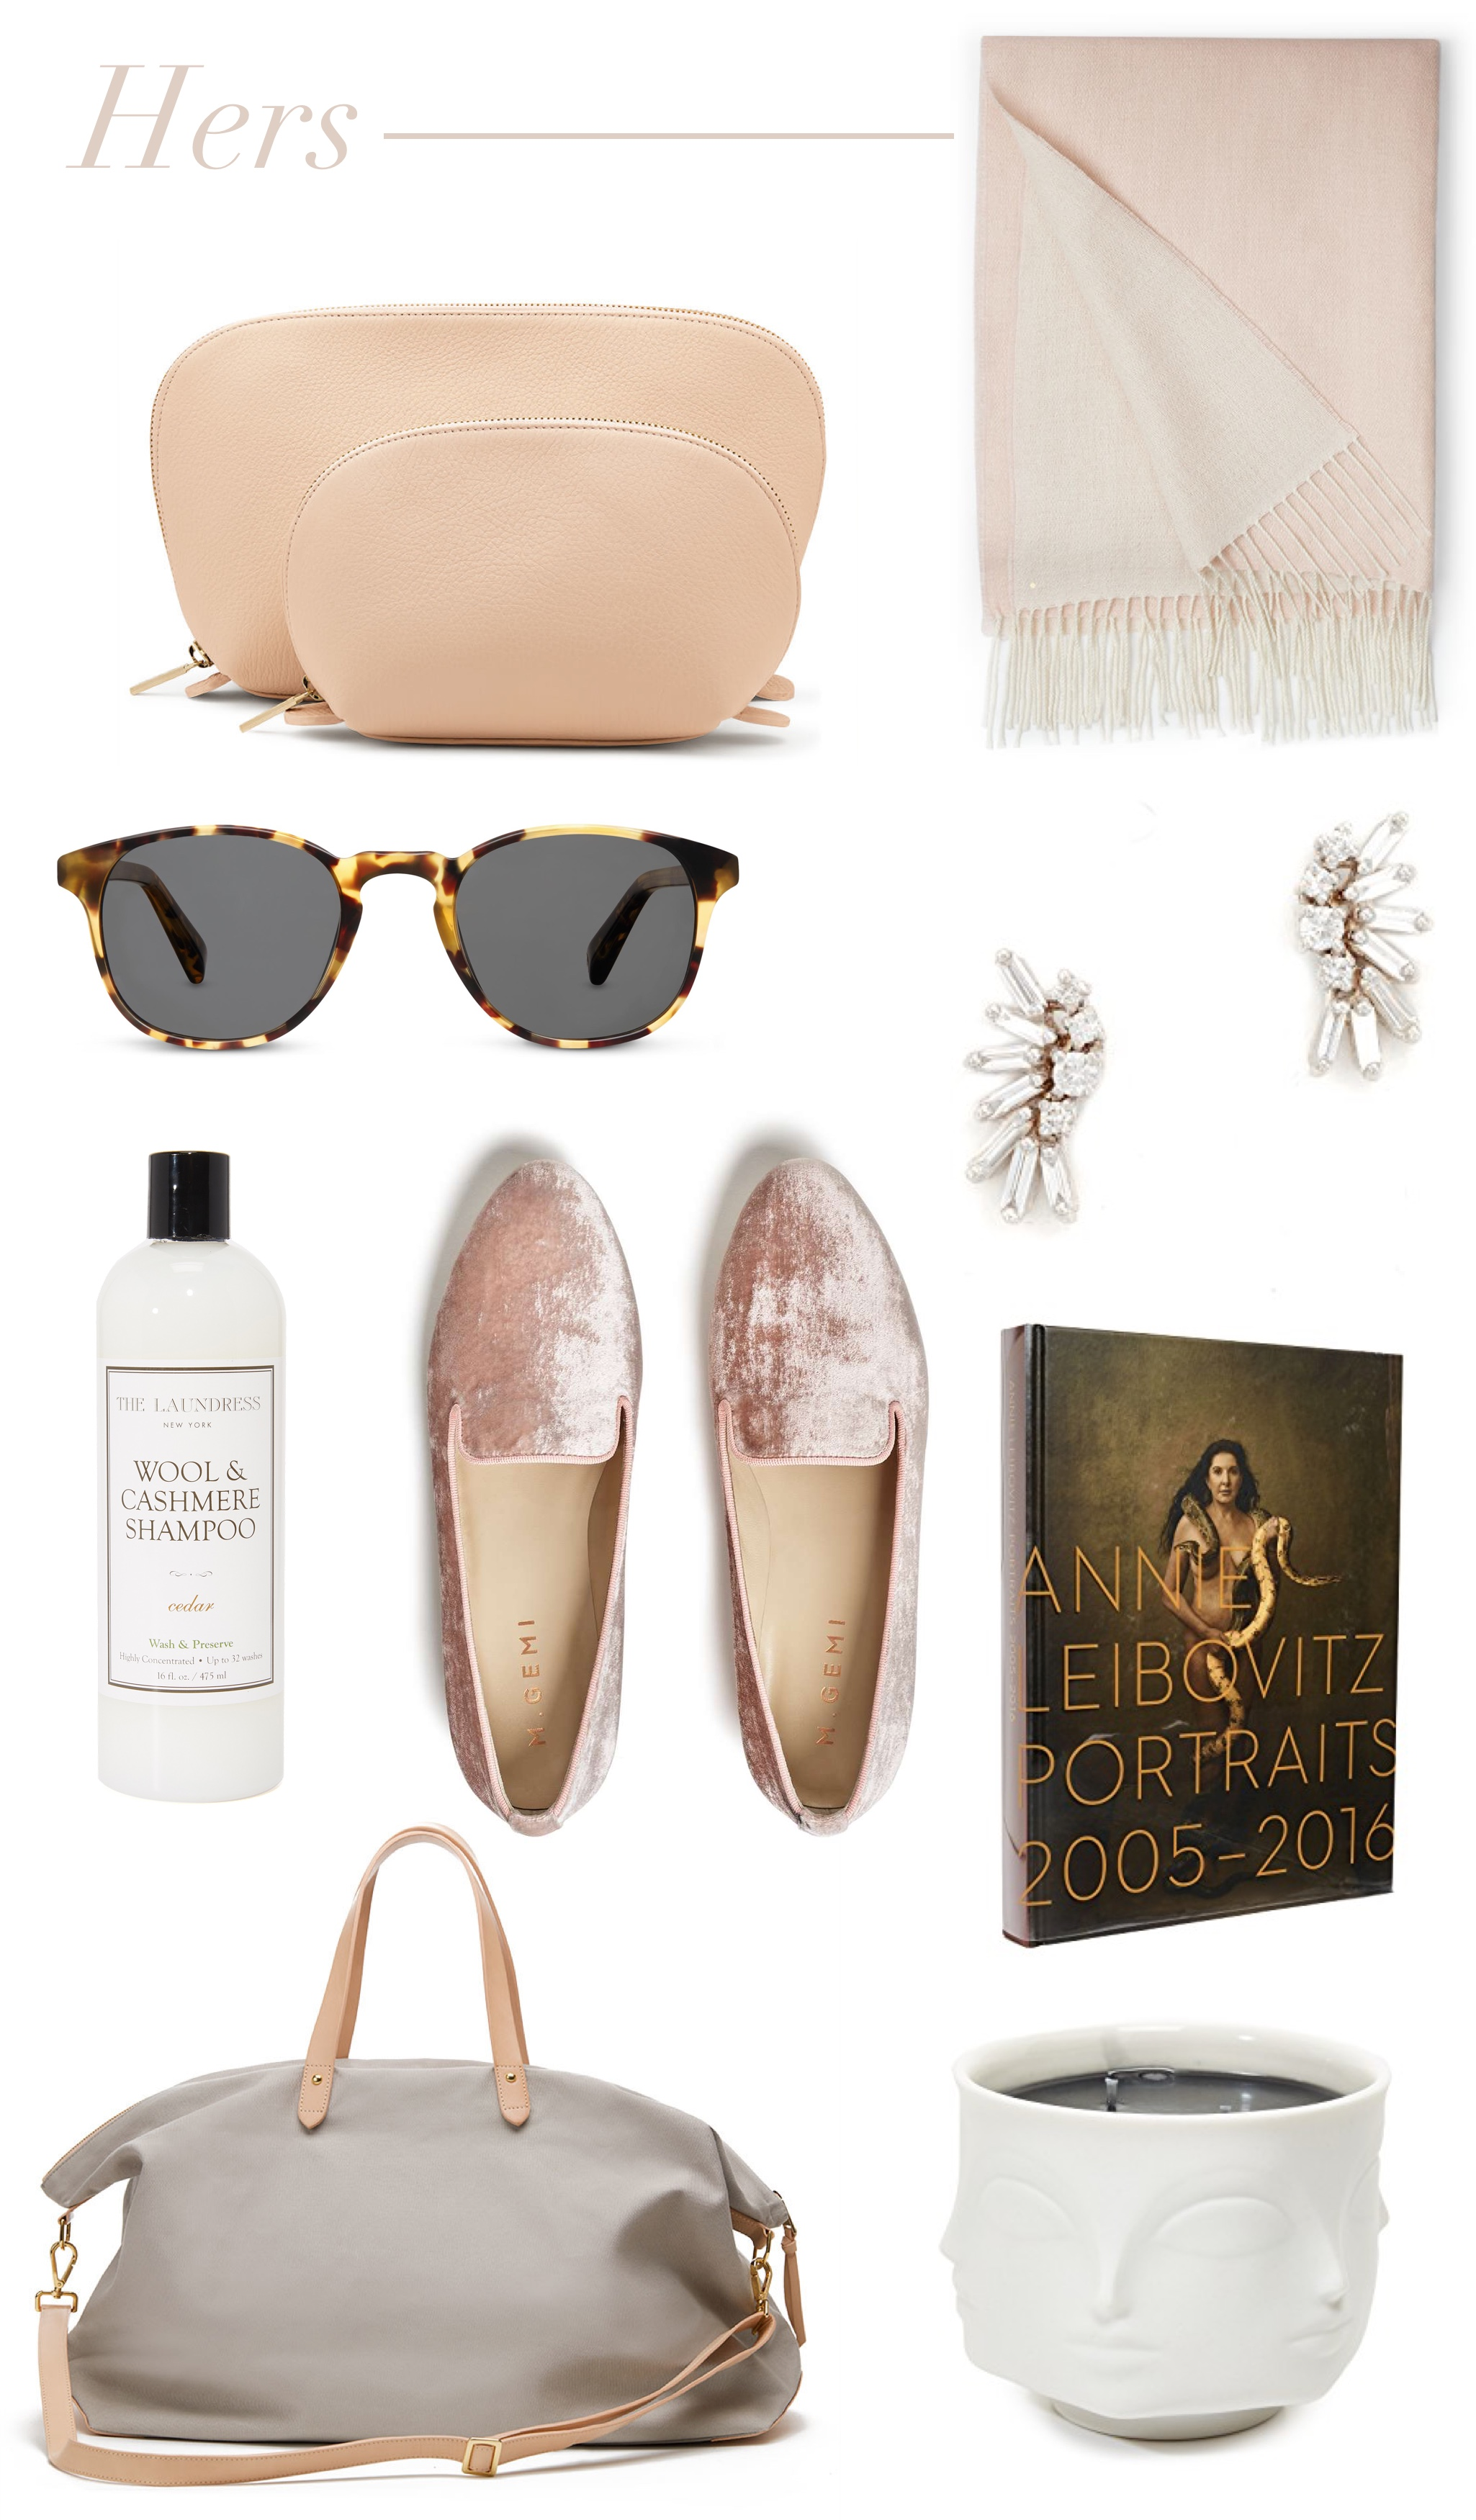 Gift Guide for the Chic Traveling Minimalist